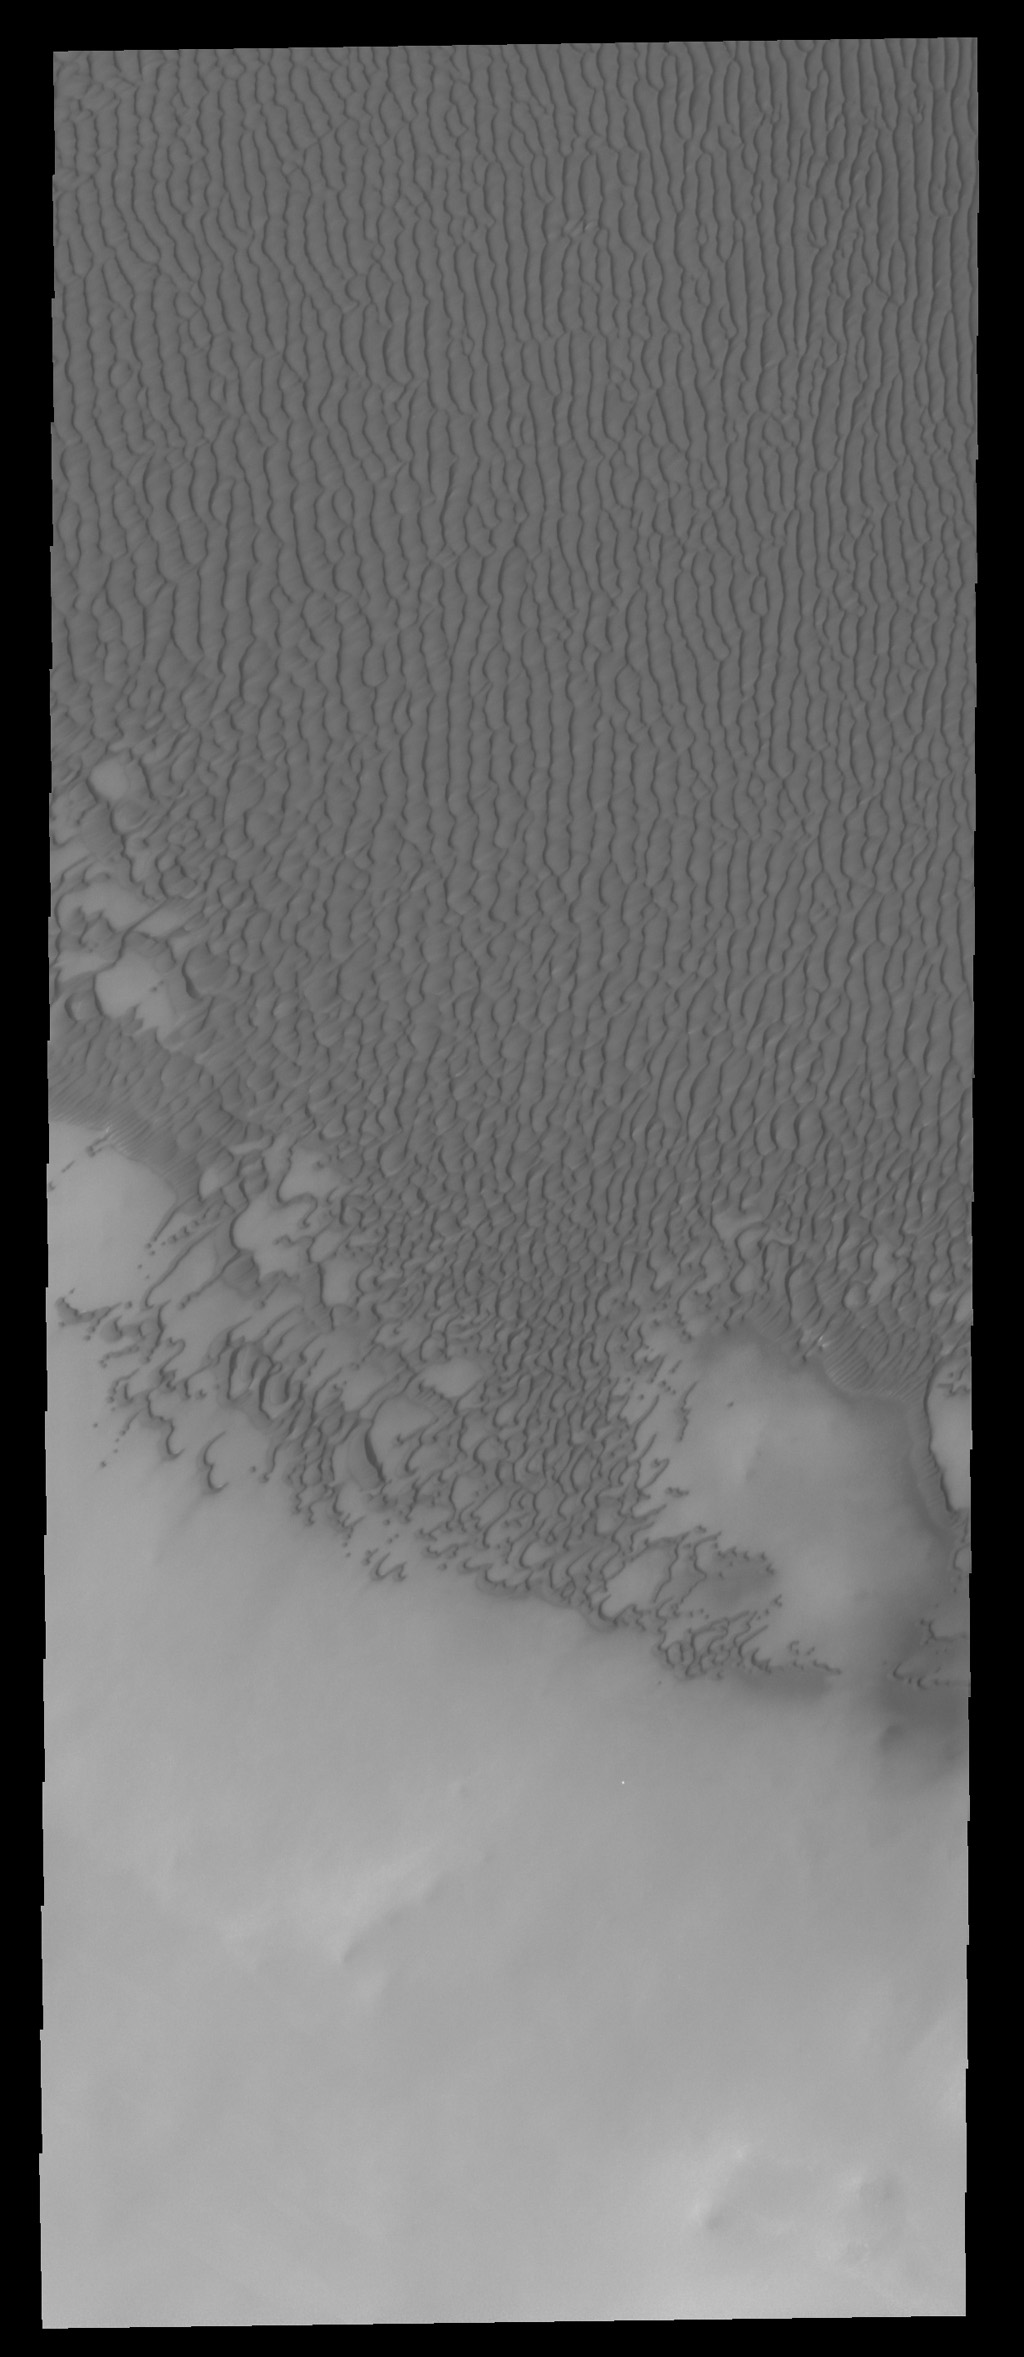 The sand dunes in this image are part of Olympia Undae, a huge sand sea located near the north polar cap as seen by NASA's 2001 Mars Odyssey spacecraft.